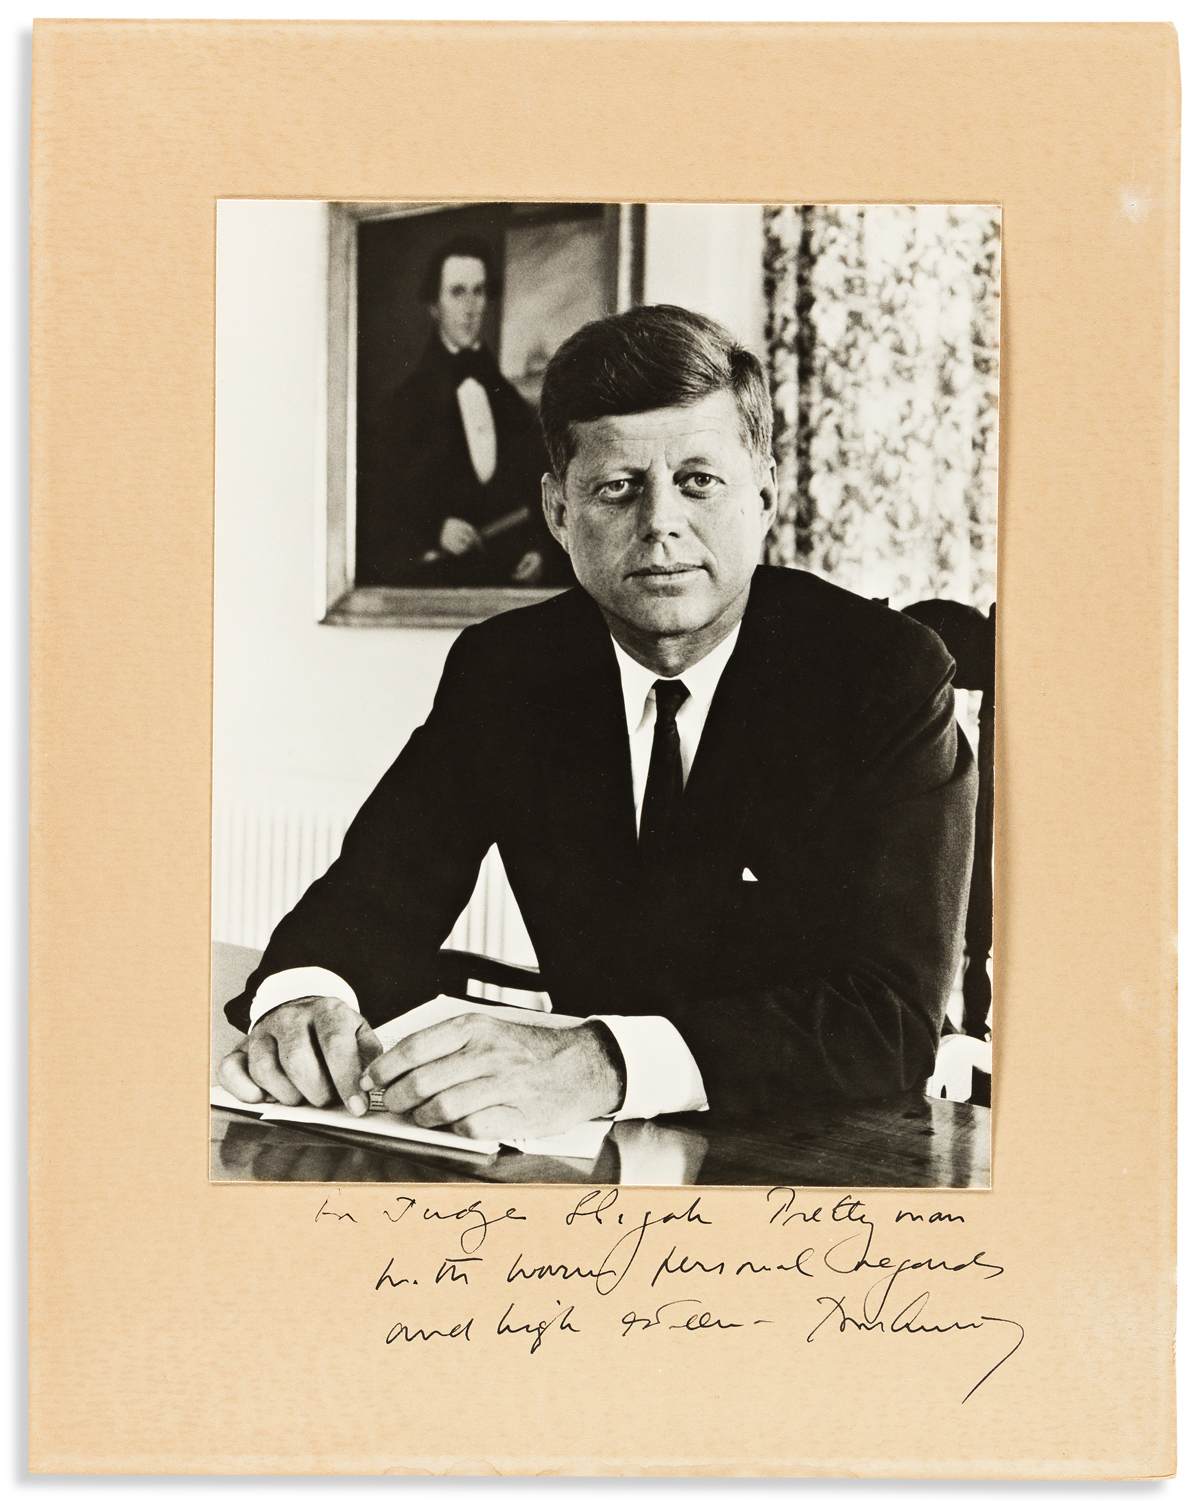 KENNEDY, JOHN F. Photograph Signed and Inscribed: For Judge Elijah Prettyman / with warm personal regards / and high esteem John Kenne